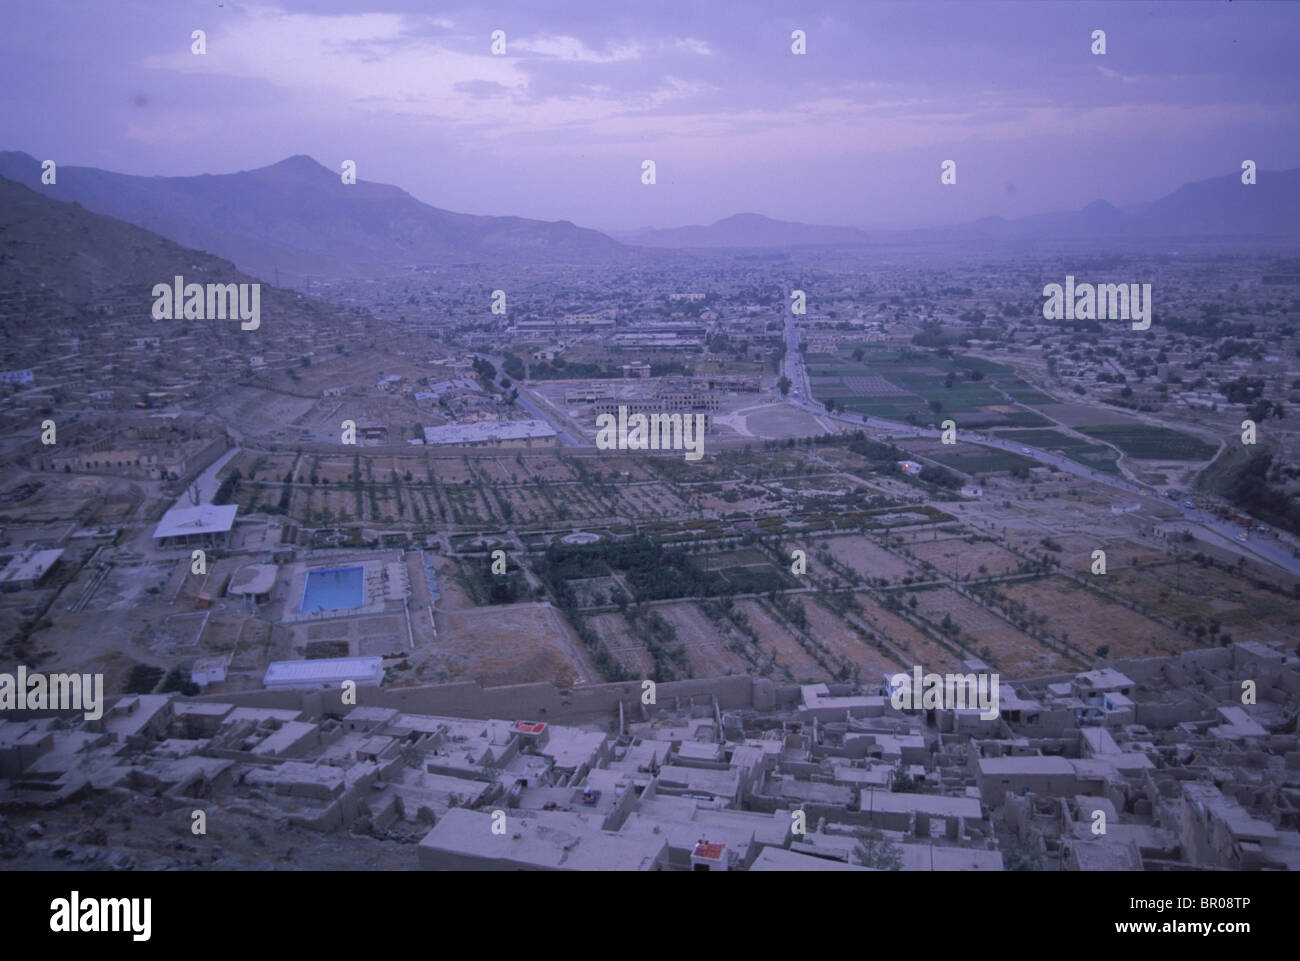 A view from a hill shows the complex of the Babur Gardens, Kabul - Stock Image